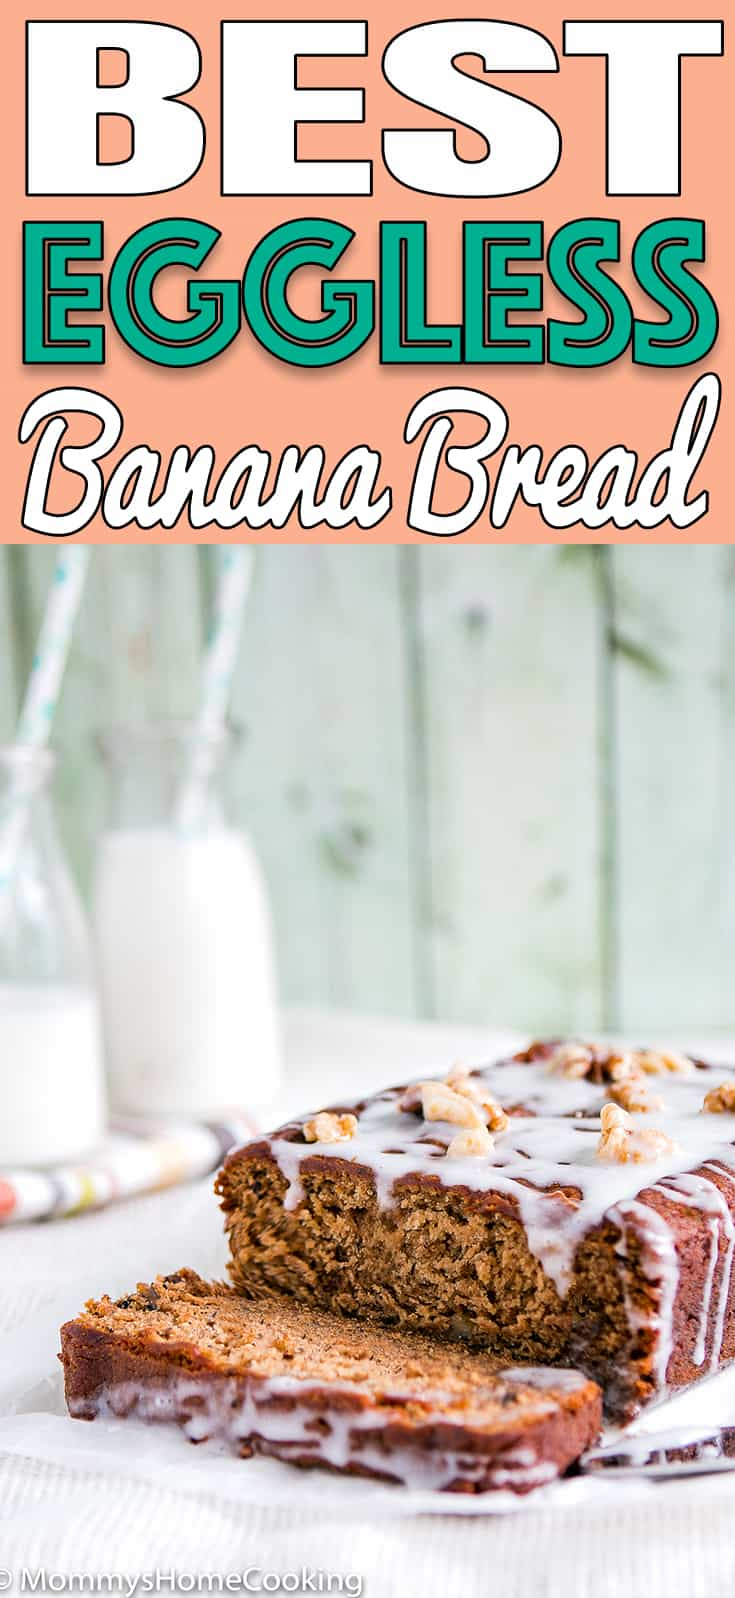 BEST Eggless Banana Bread - Make the BEST Eggless Banana Bread with this easy recipe! It sweet, moist, and full of flavor. #eggless #recipes #bananabread #eggless recipes